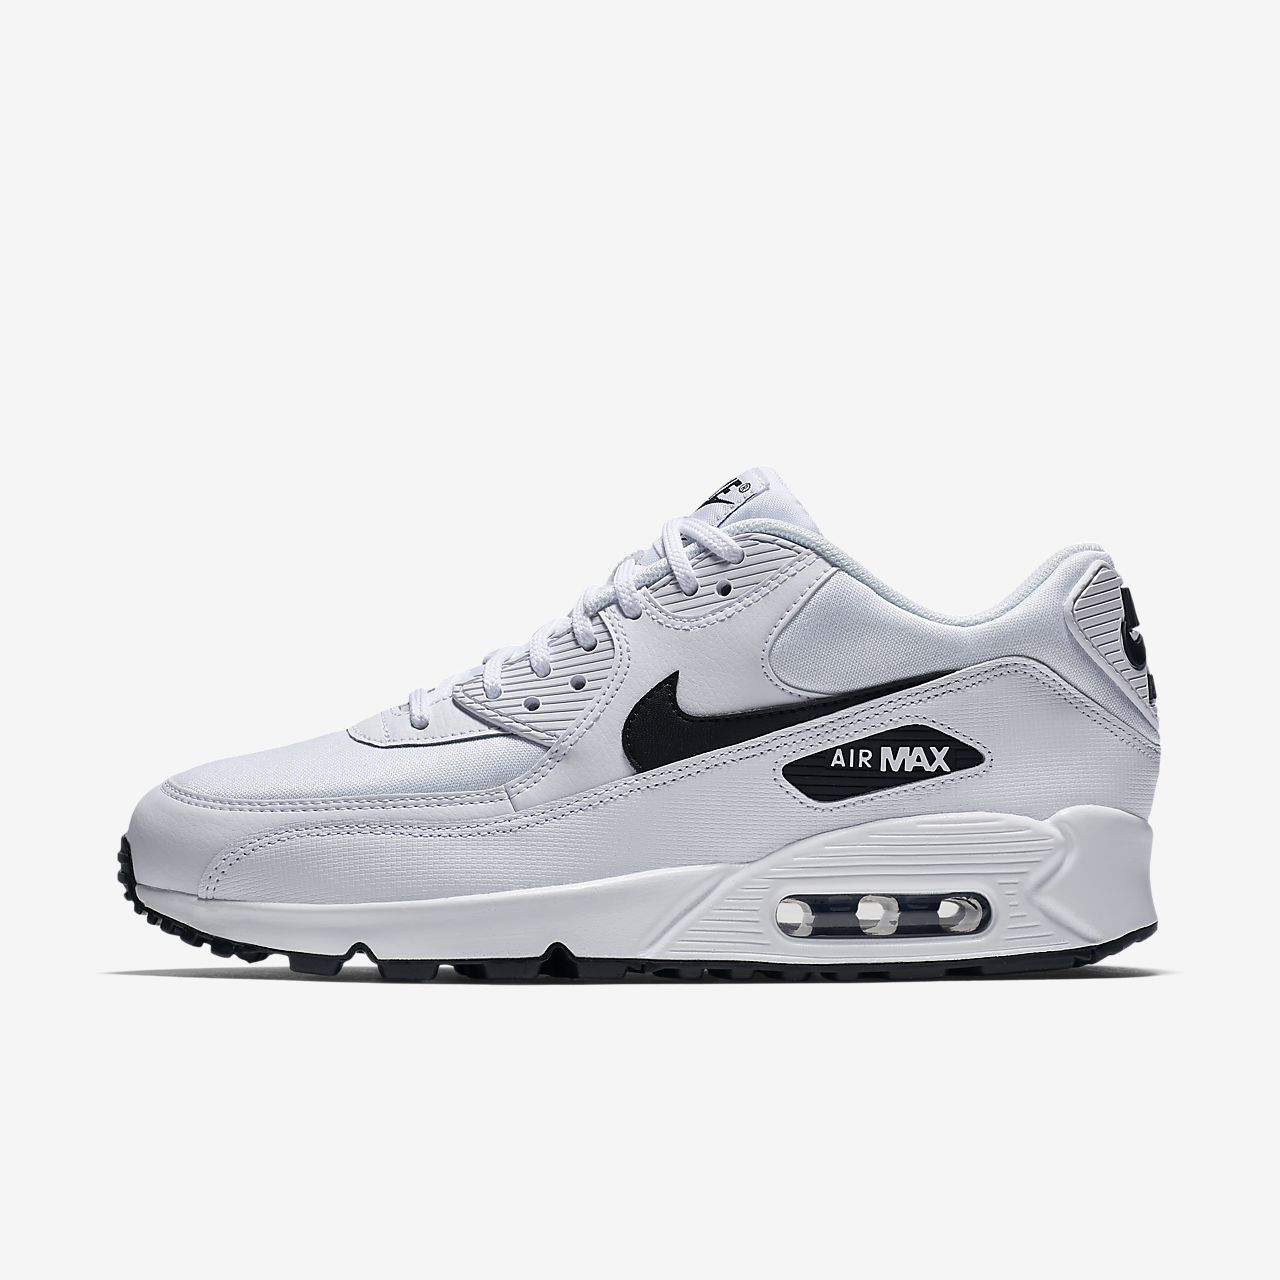 ... Nike Air Max 90 Women's Shoe